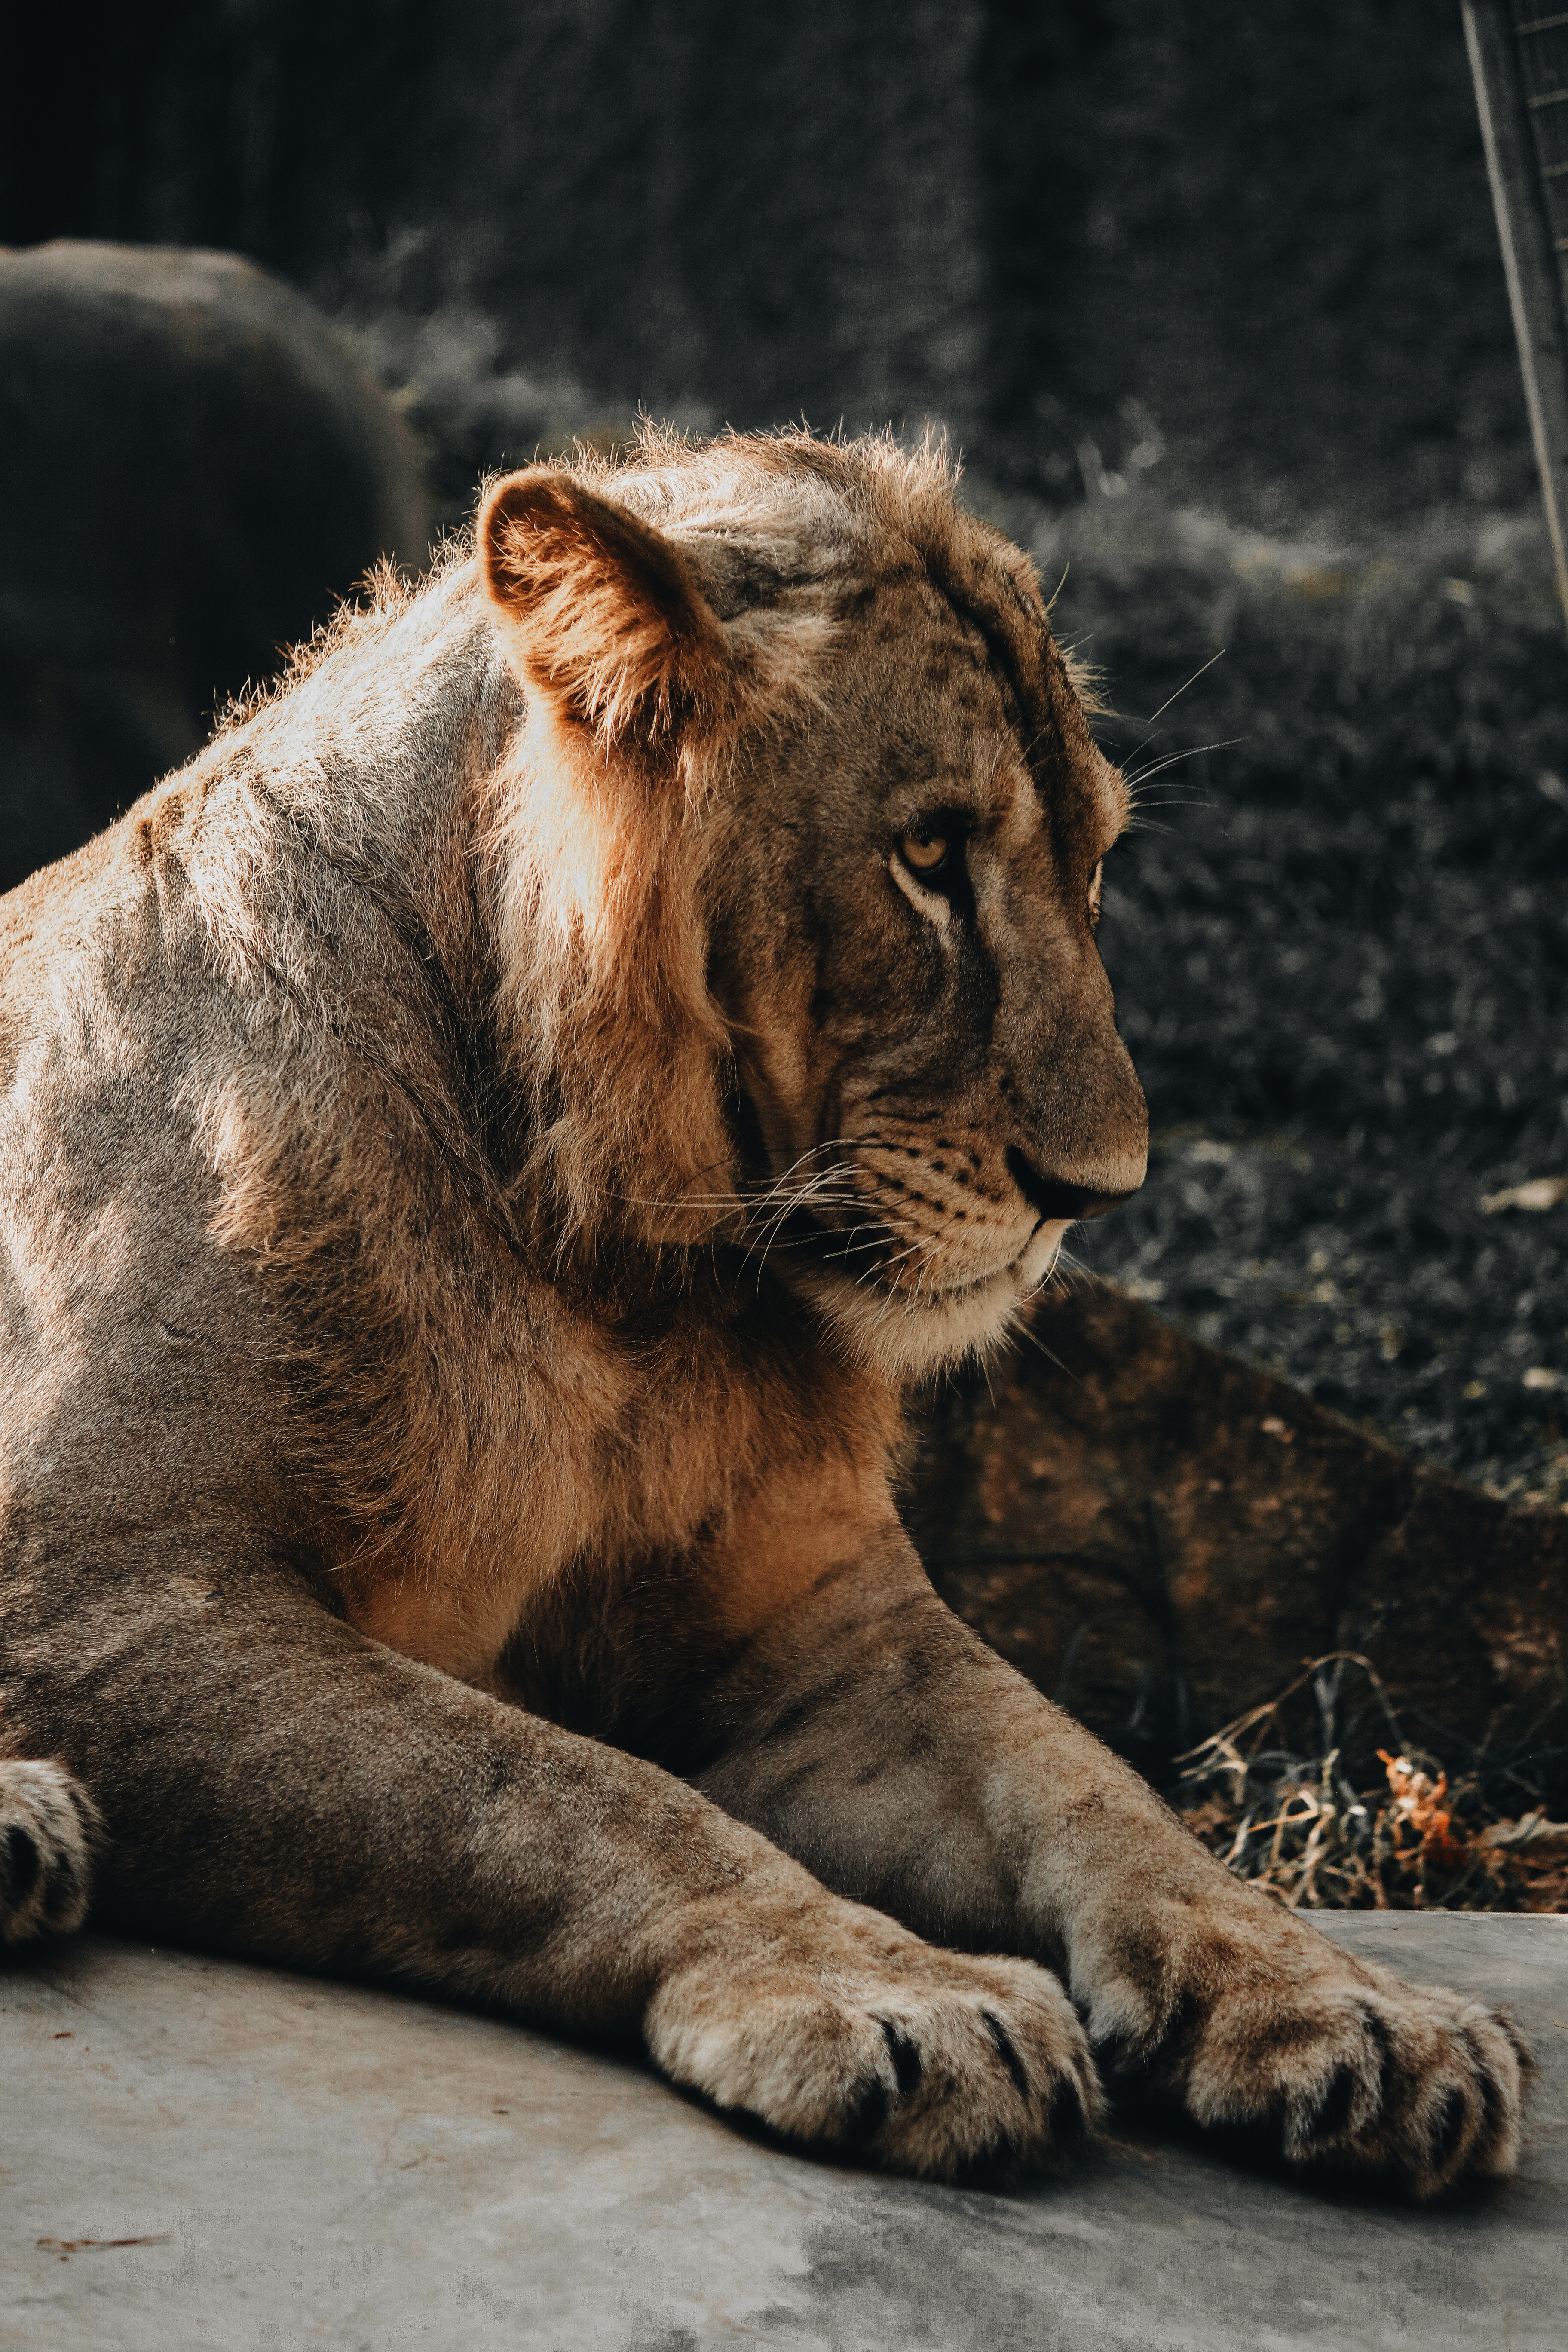 150699 download wallpaper Animals, Lion, Lion Cub, Young, Joey, To Be Embarrassed, Be Embarrassed, Predator, Big Cat screensavers and pictures for free